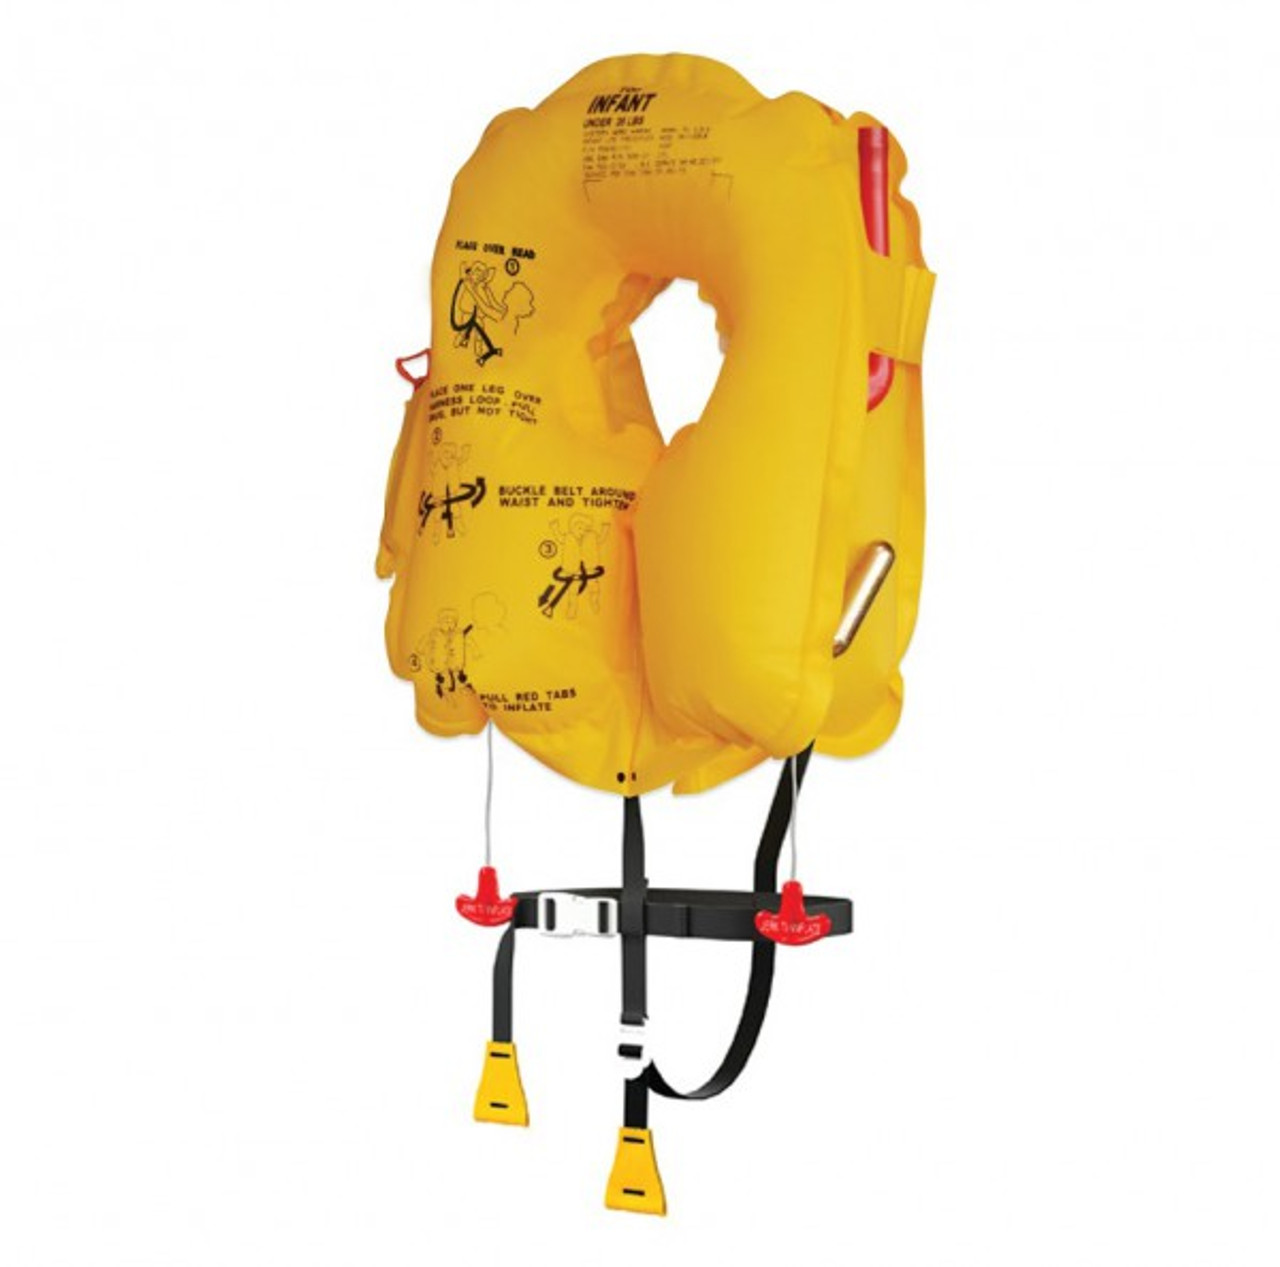 Eastern Aero Marine Vests – Infant Series Life Vest / P0640-101 This specially designed and affordable life vest is made exclusively for children less than 35 lbs. (16 kg). EAM infant vests come in USA and European versions, for the constantly changing safety markets of commercial carriers.